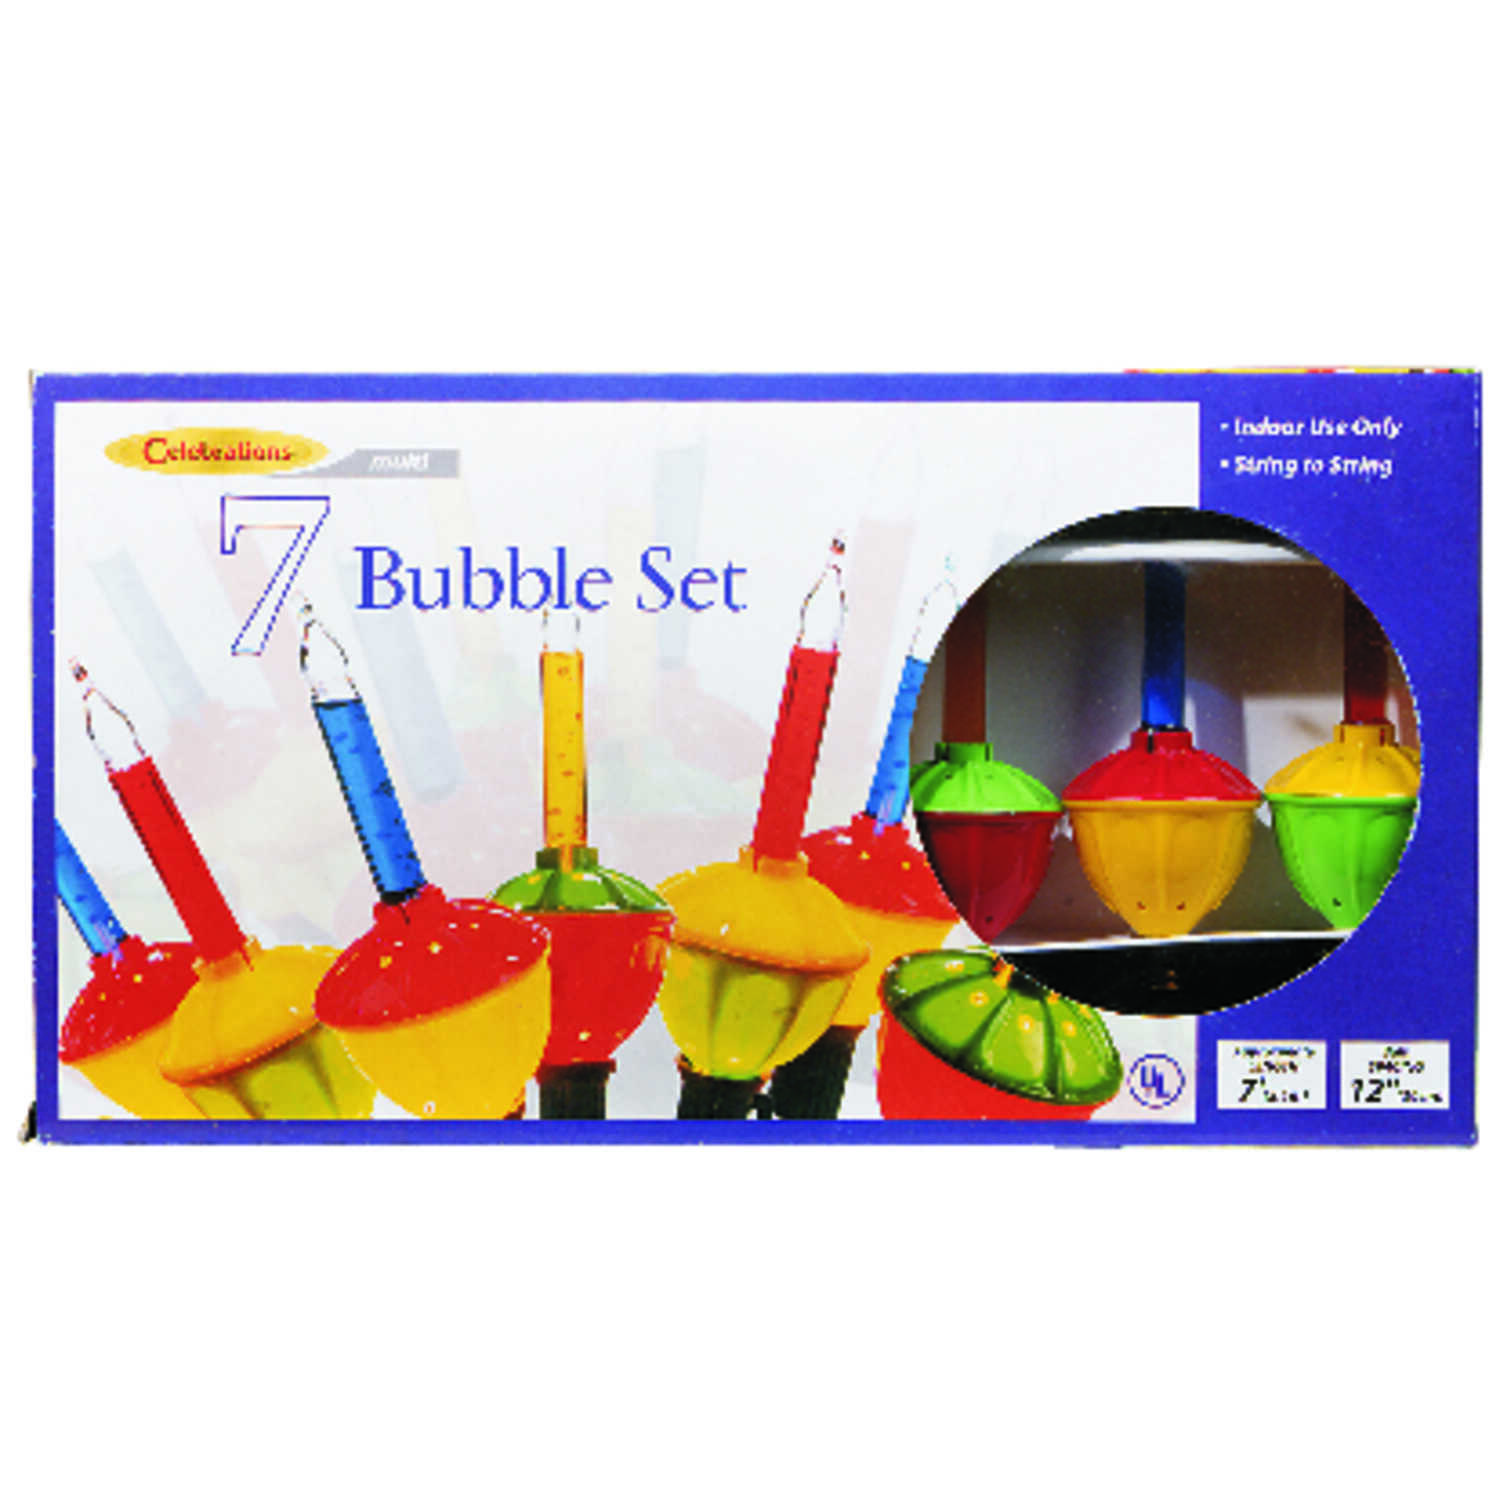 Celebrations  C7  Bubble  Light Set  Multicolored  7 ft. 7 lights